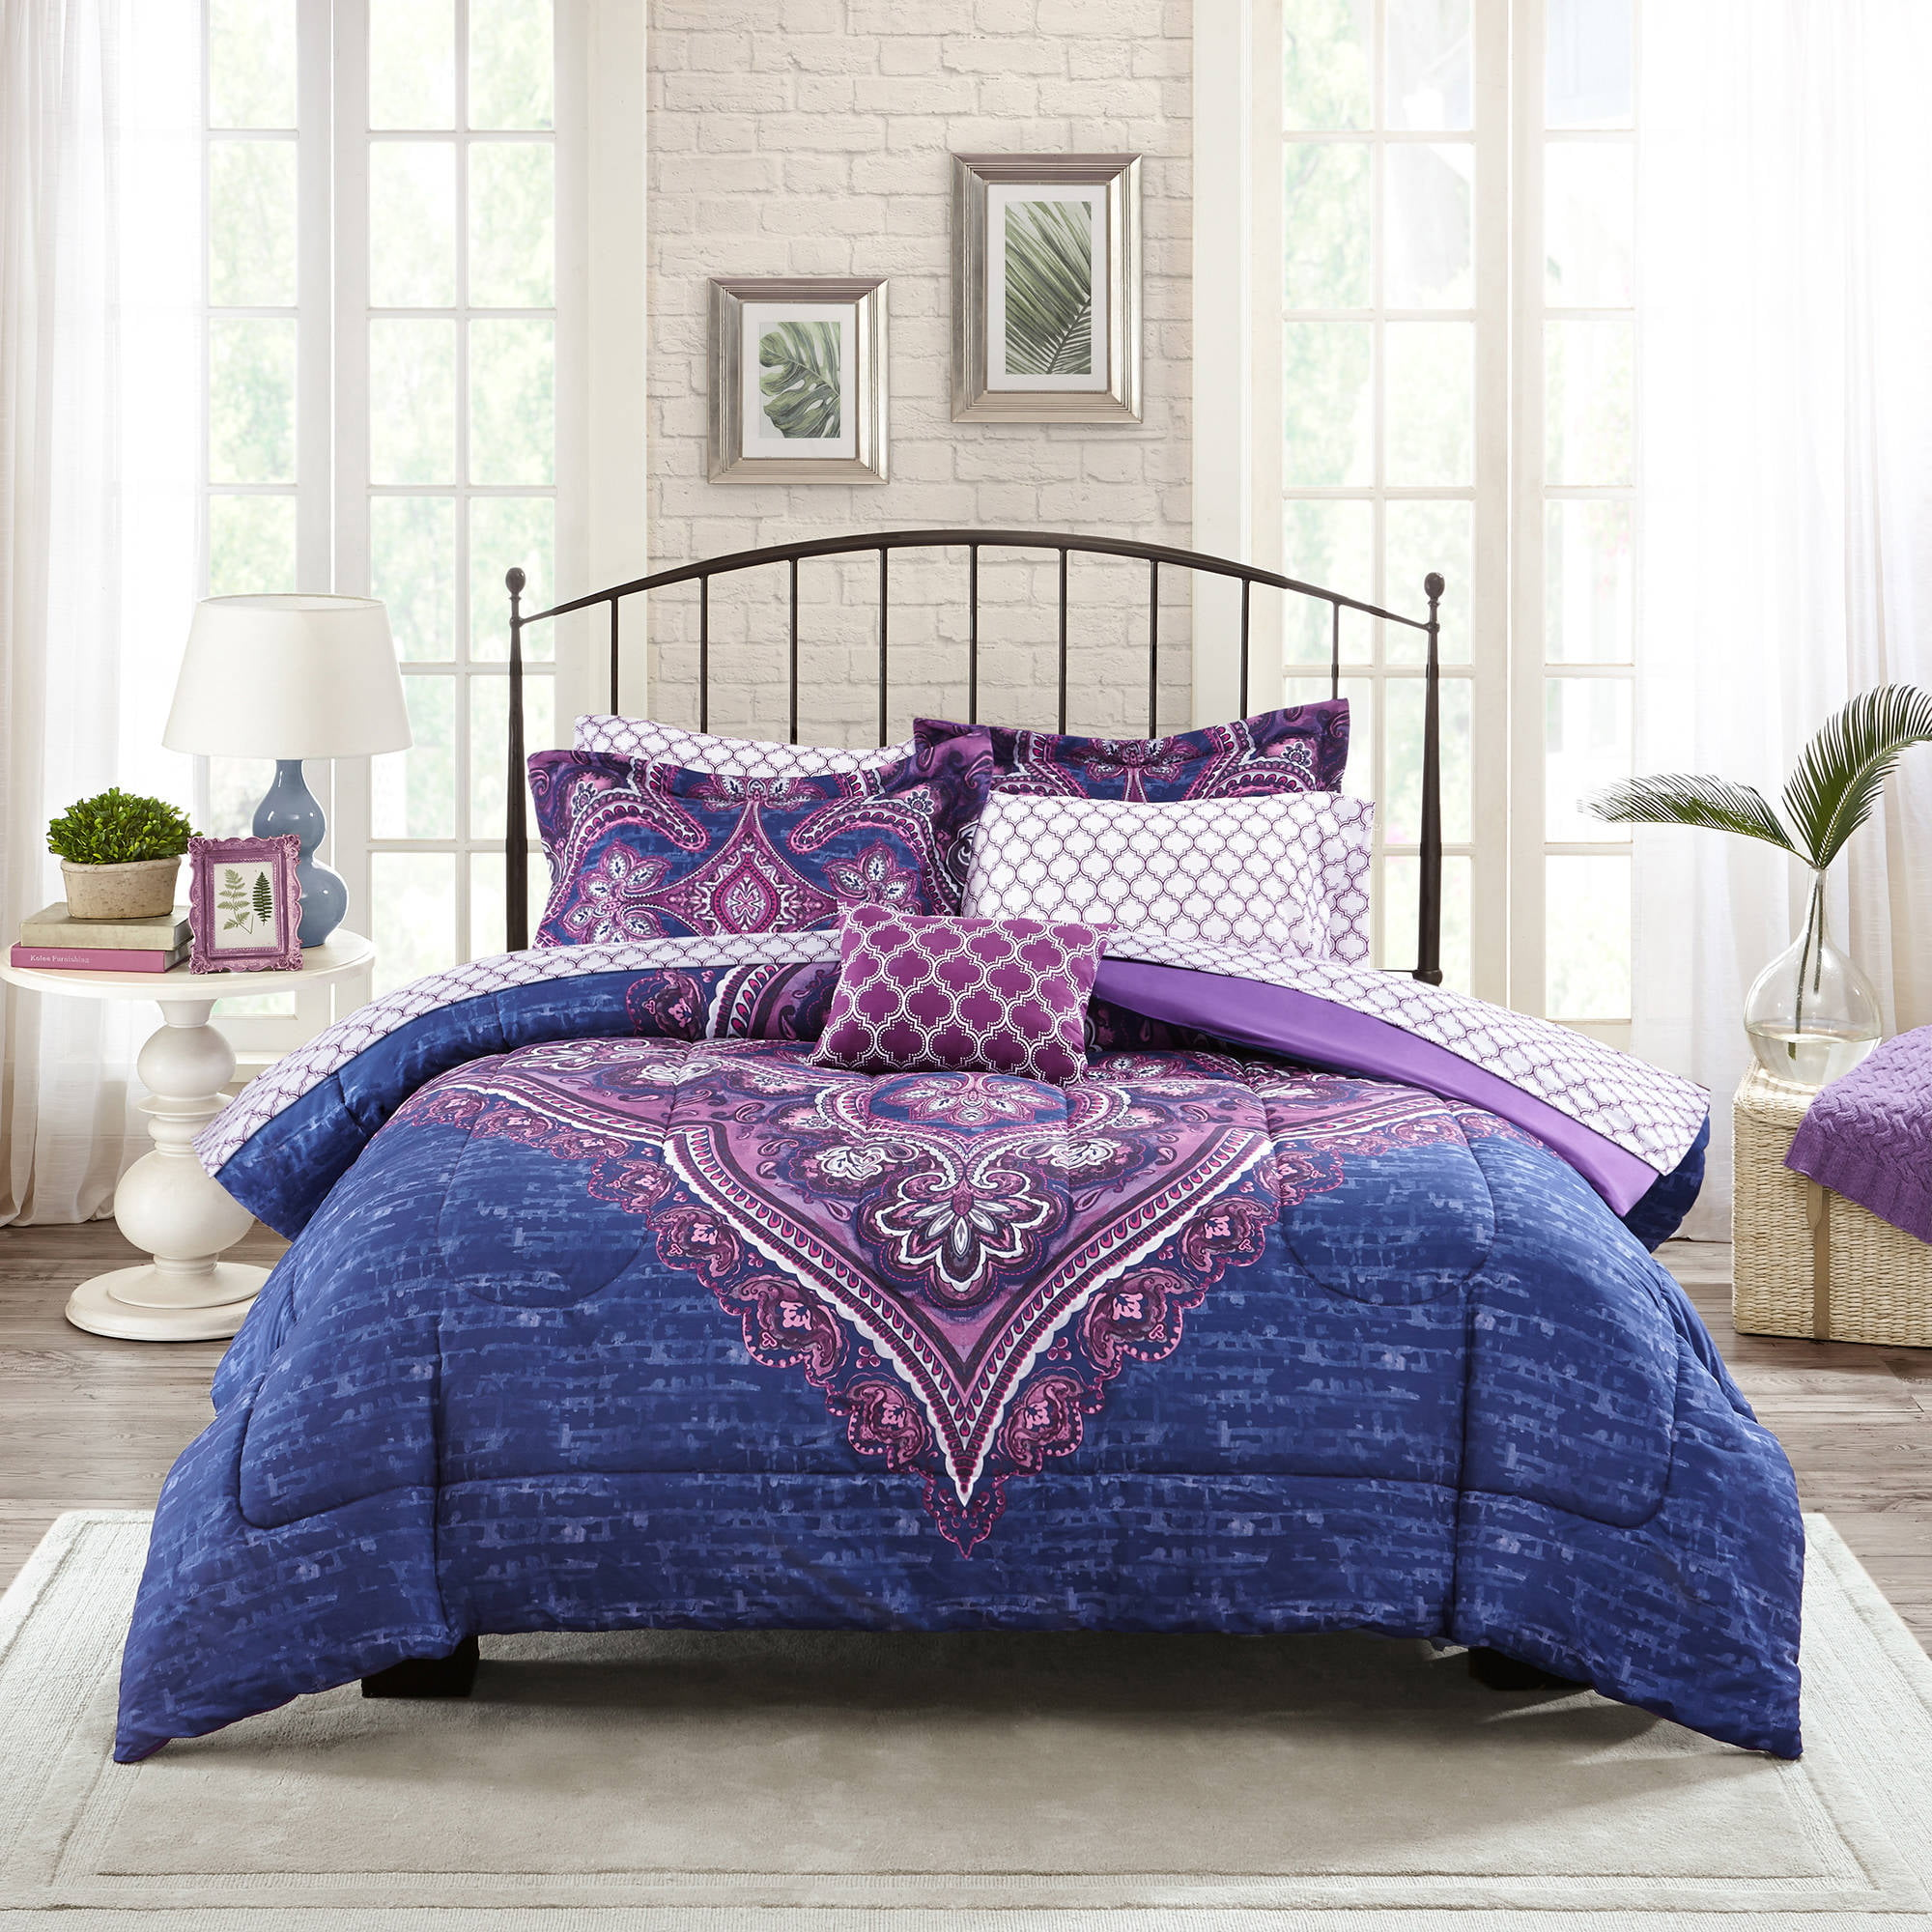 Purple bedding for teenage girls - Purple Bedding For Teenage Girls 8